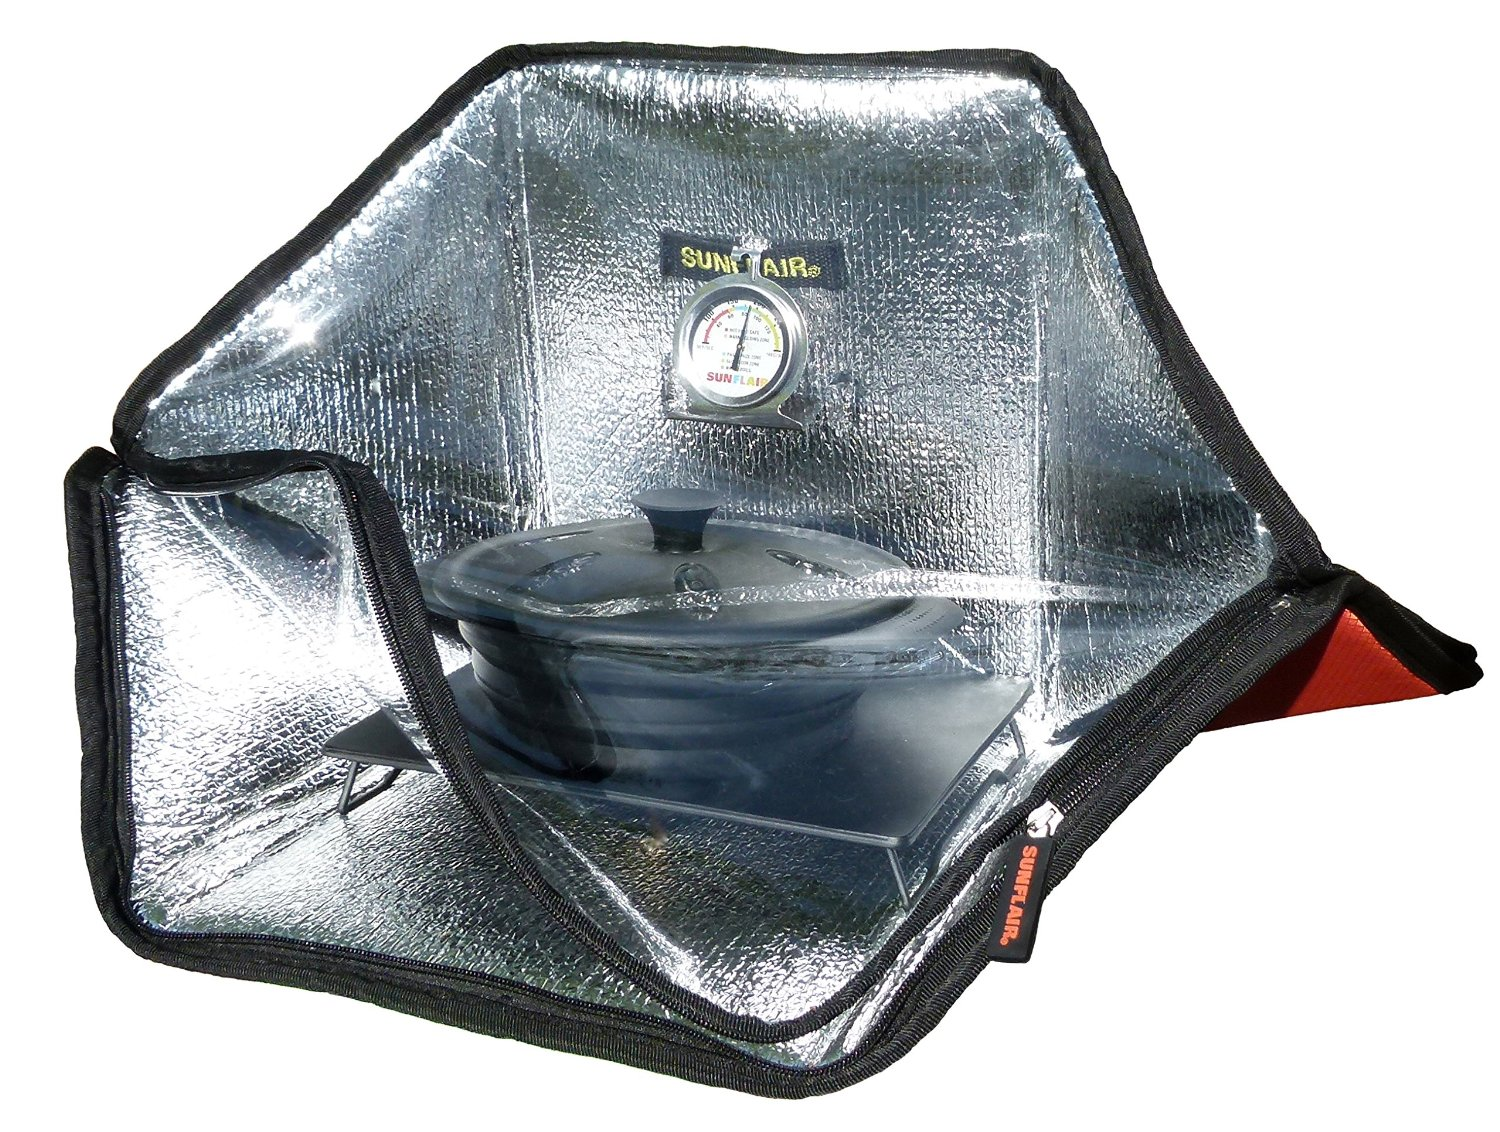 sunflair, solar cooker, solar oven, camping, cooking